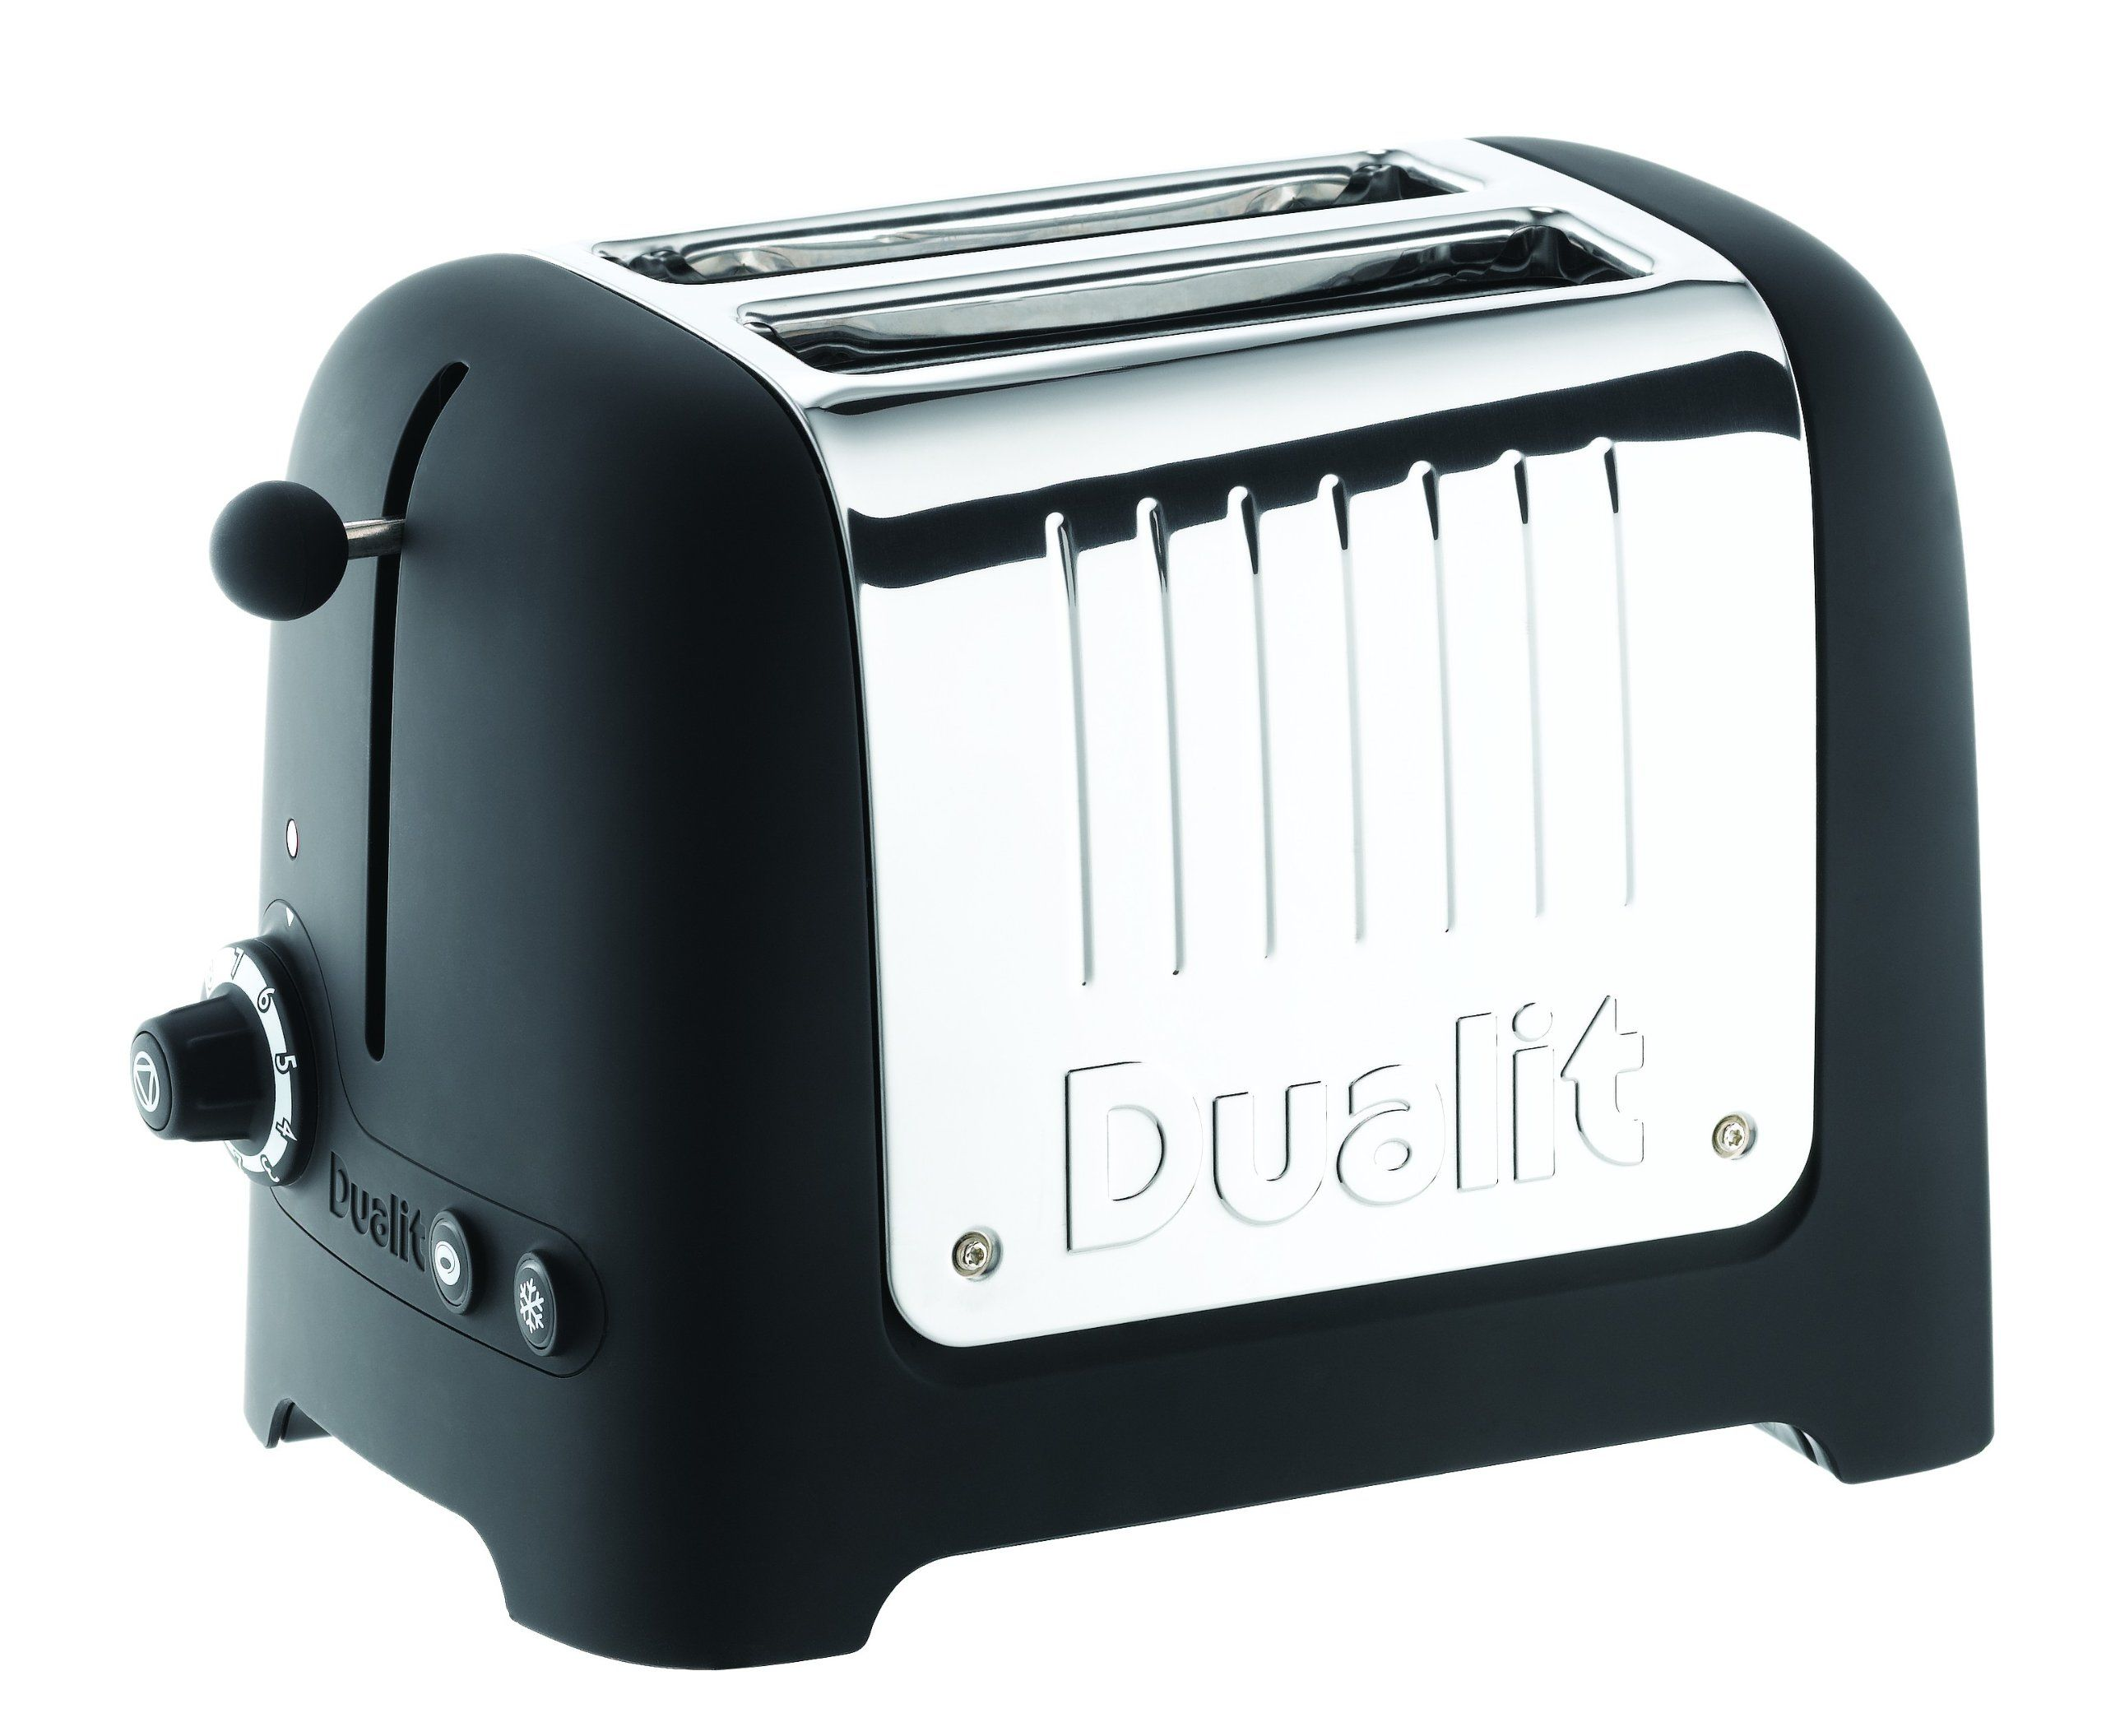 best steel rated sellers reviews extra bagel reviewe bread beach toaster stainless ultimate dp toasters wide slot slice cuisinart black hamilton